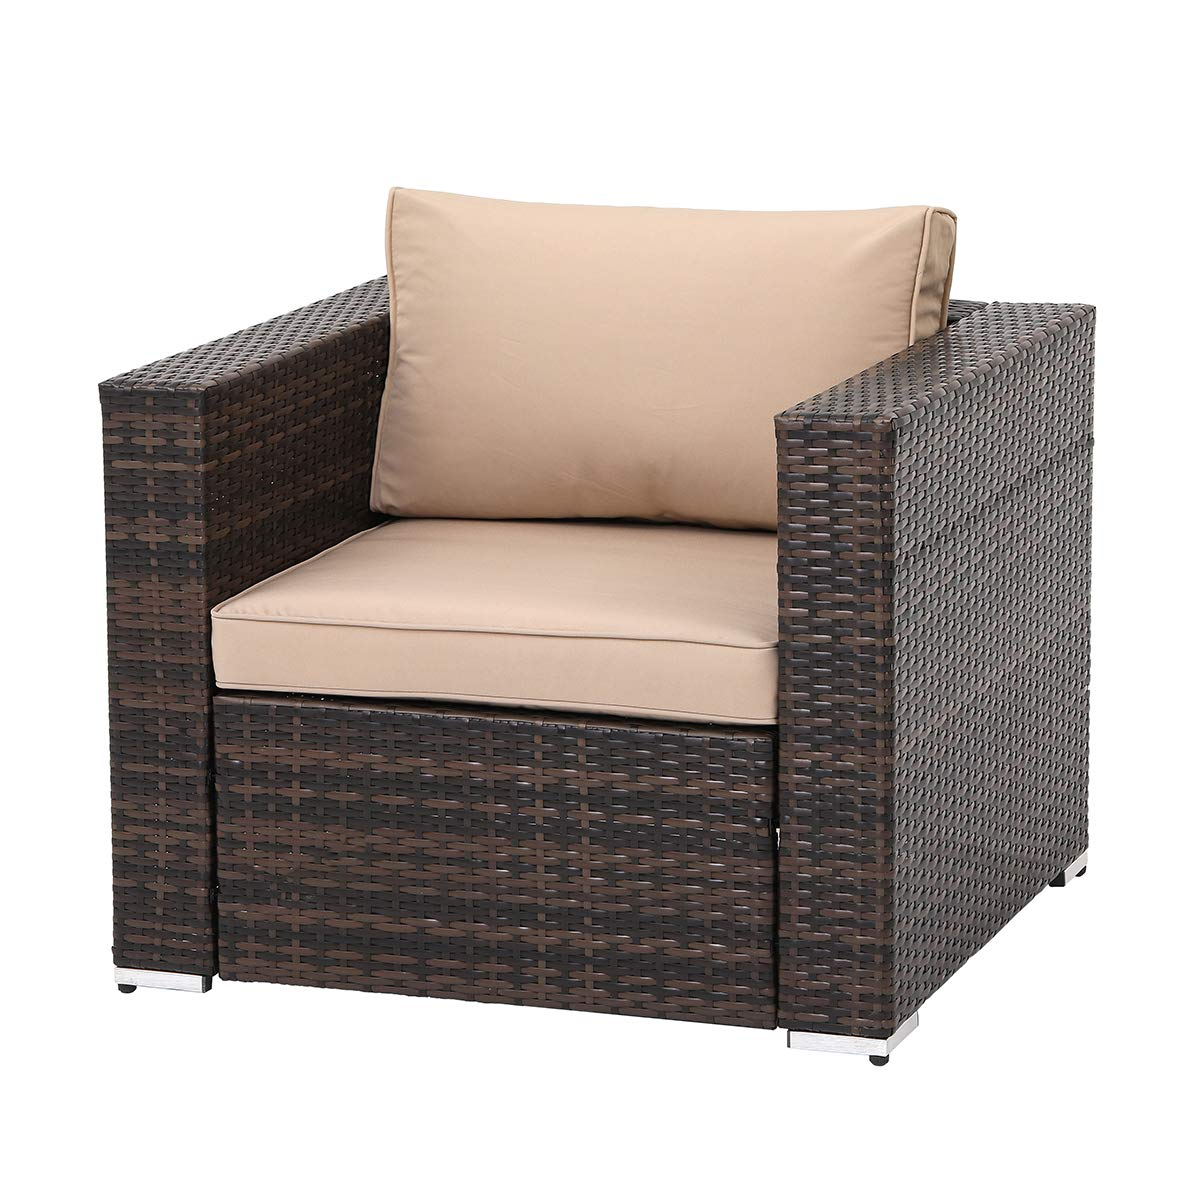 SUNCROWN Outdoor Patio Furniture Brown Checkered Wicker Sofa Chair, Additional Chair with Machine Washable Cushion Covers, Backyard, Pool by SUNCROWN